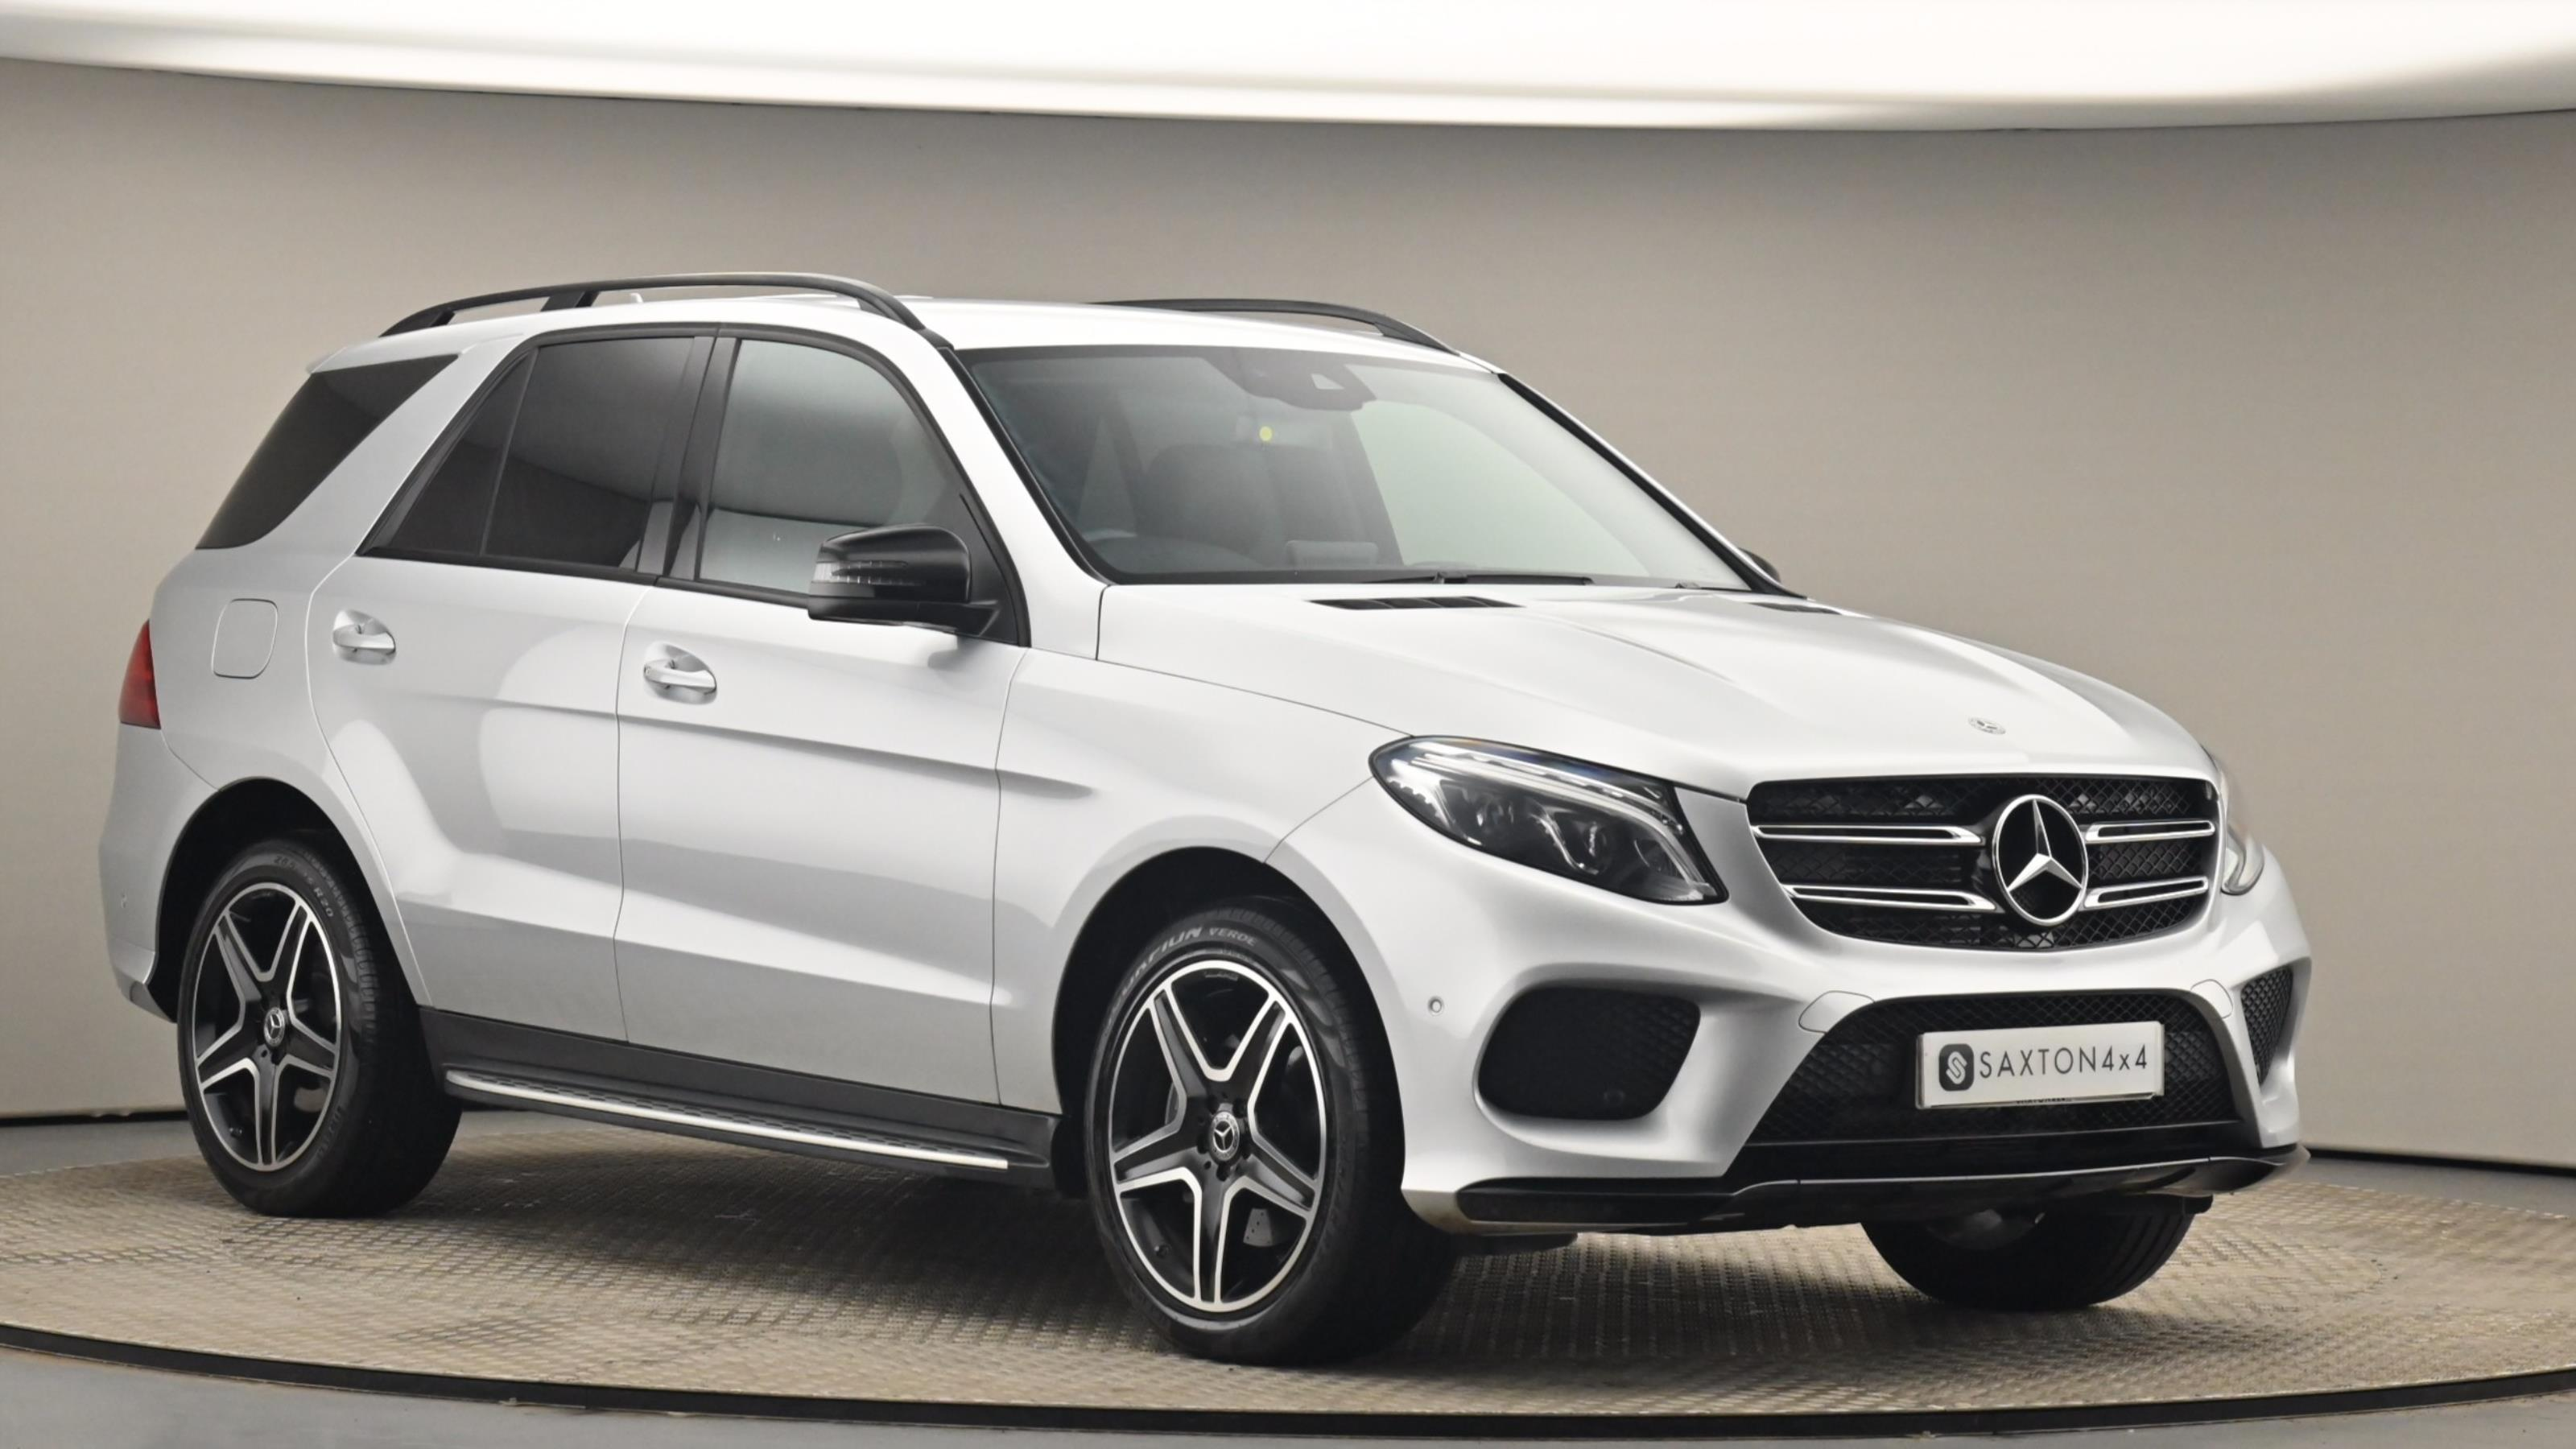 Used 2018 Mercedes-Benz GLE GLE 250d 4Matic AMG Night Edition 5dr 9G-Tronic at Saxton4x4